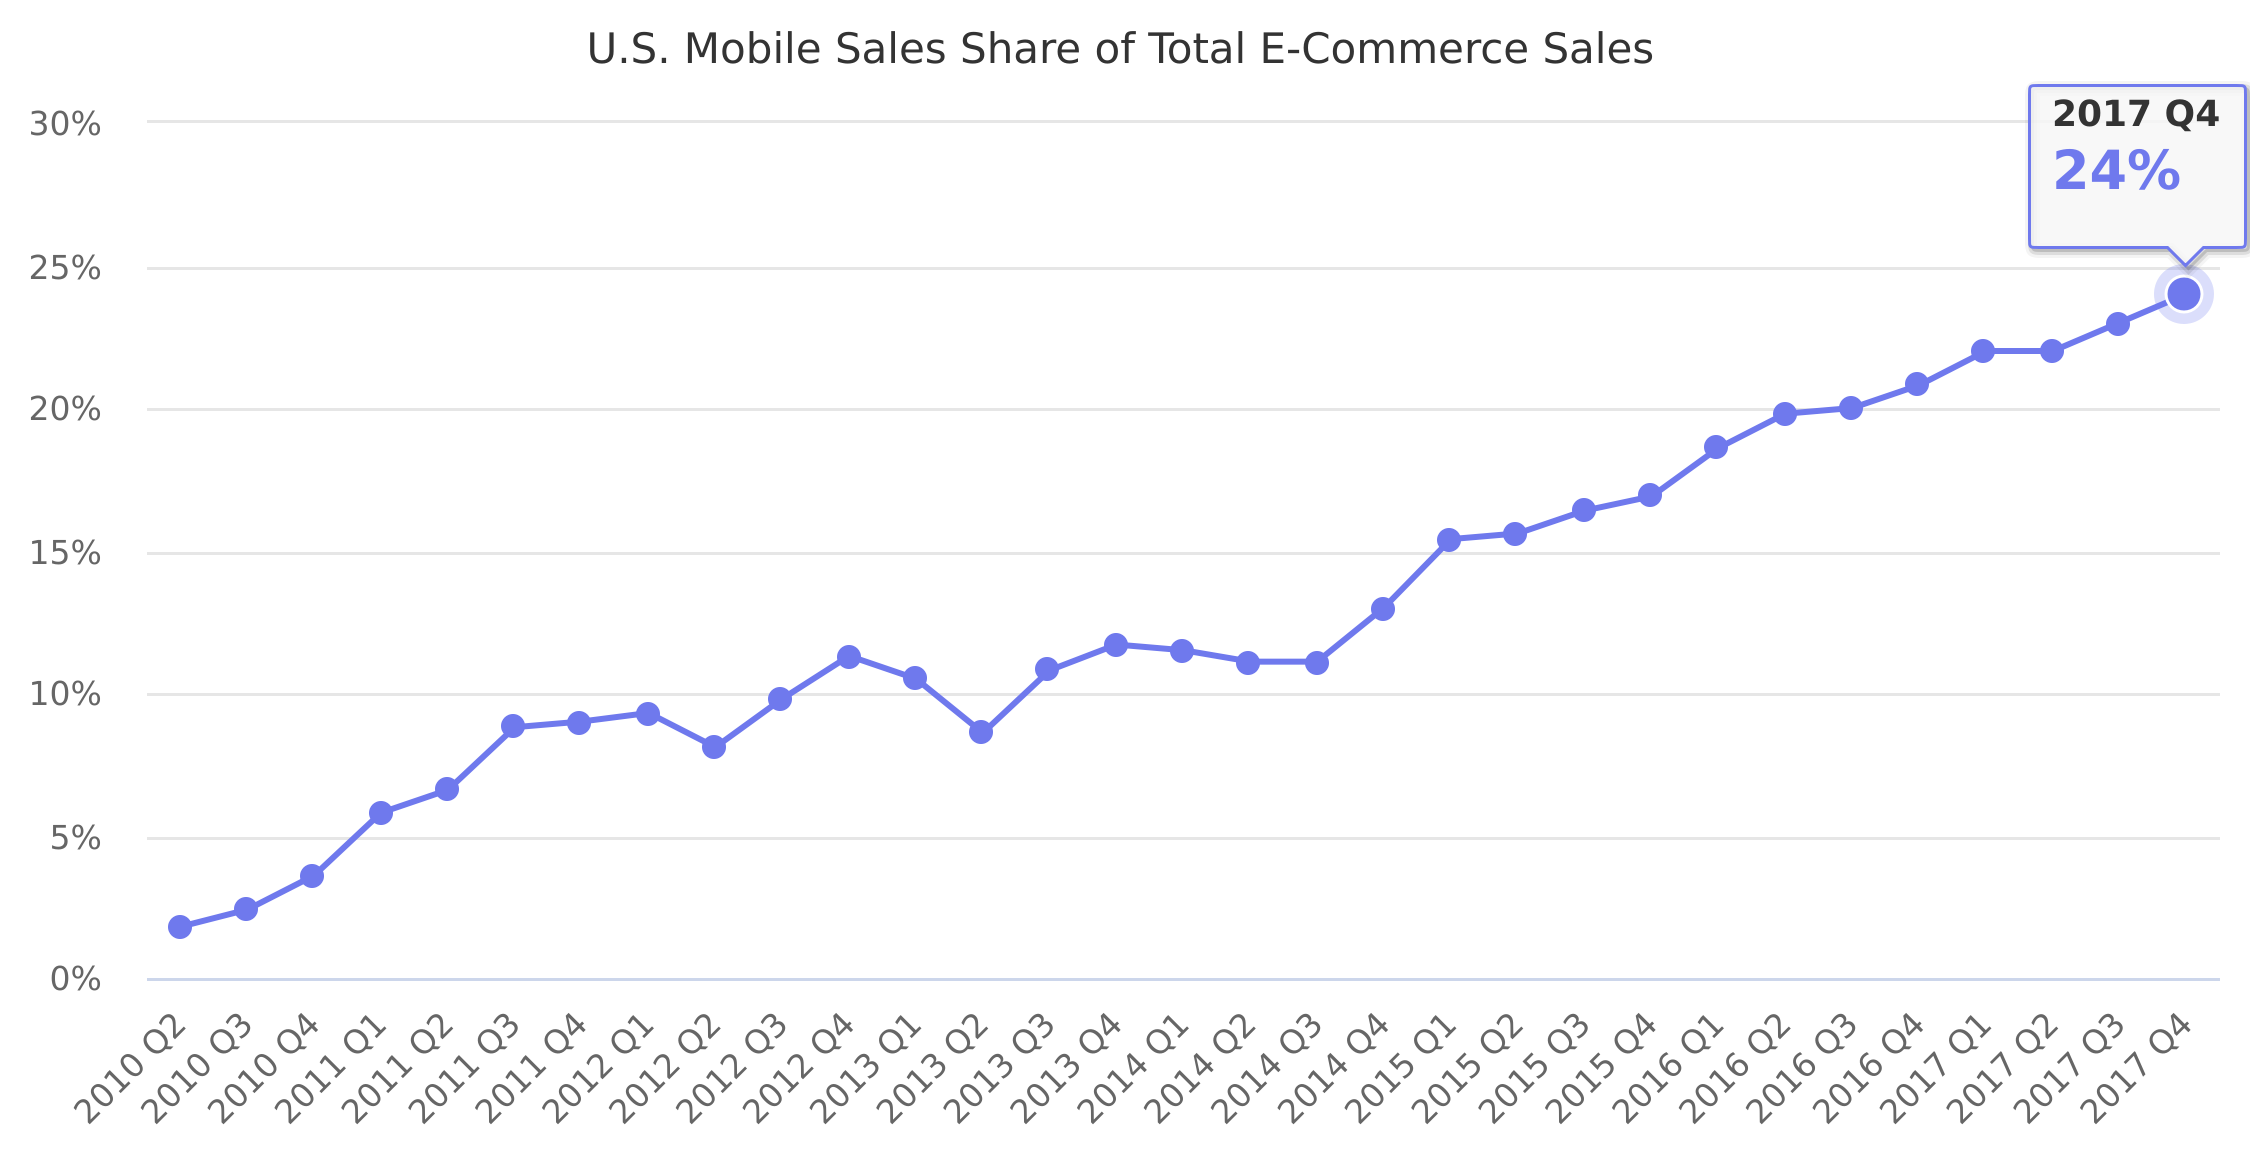 U.S. Mobile Sales Share of Total E-Commerce Sales